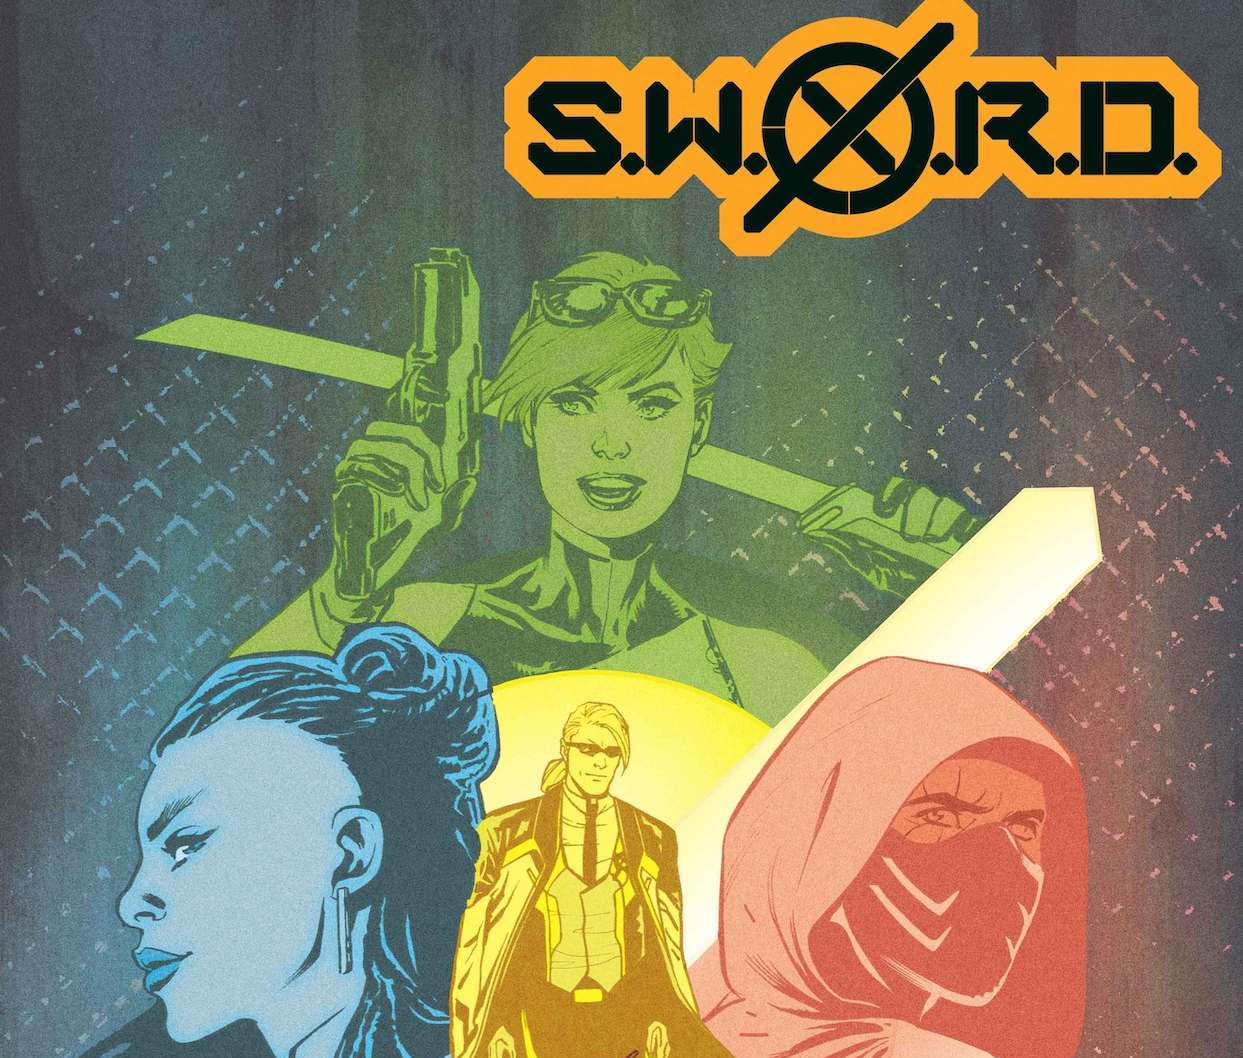 EXCLUSIVE Marvel First Look: S.W.O.R.D. #1 variant by Lupacchino and Bellaire